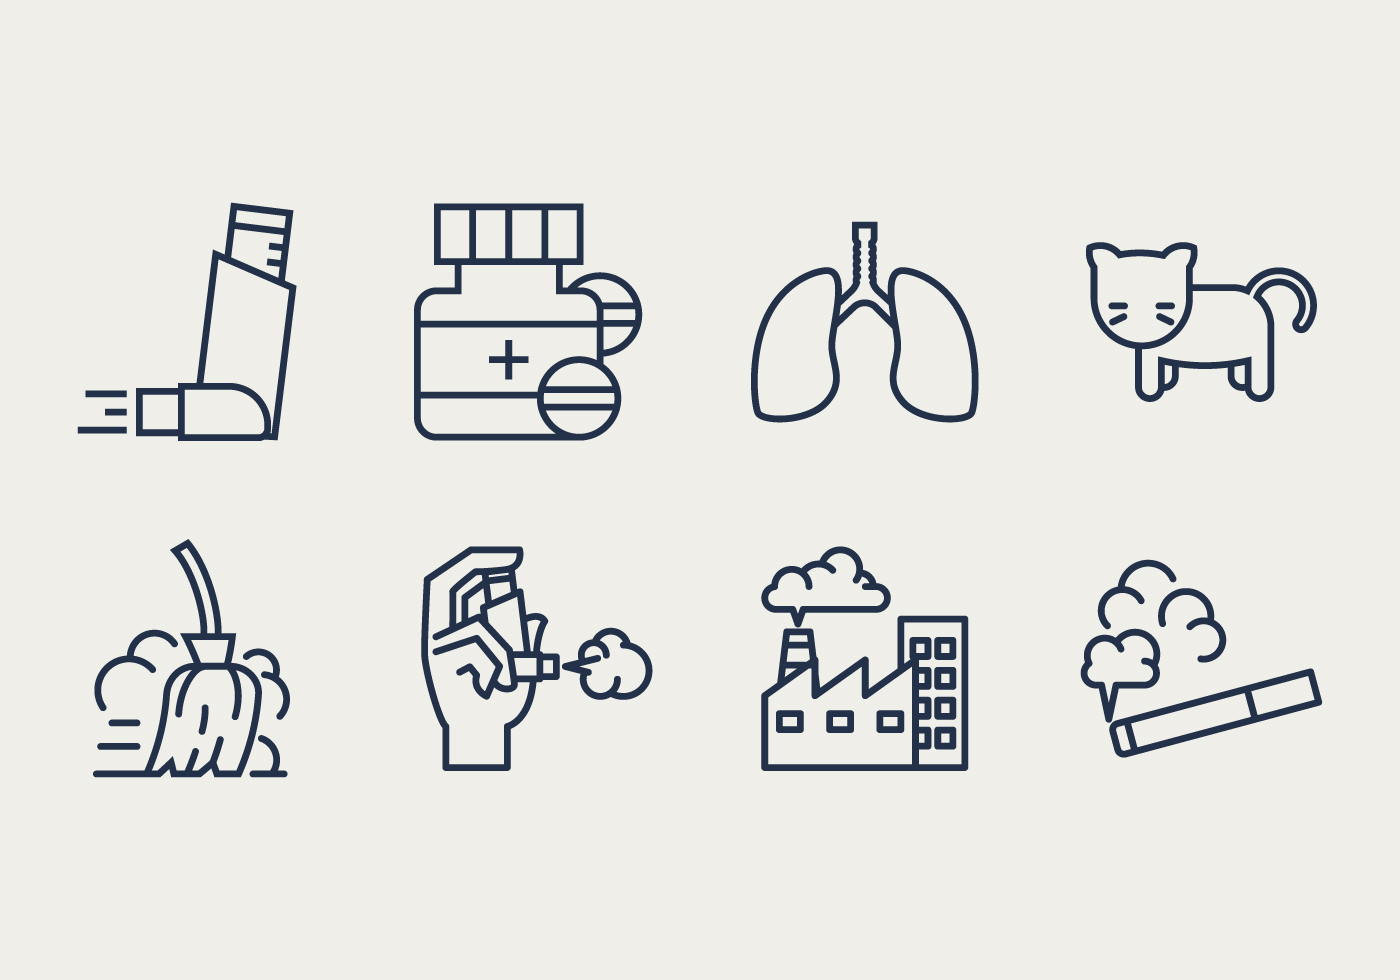 Asthma Symptoms and Causes Icons - Download Free Vector Art, Stock ...